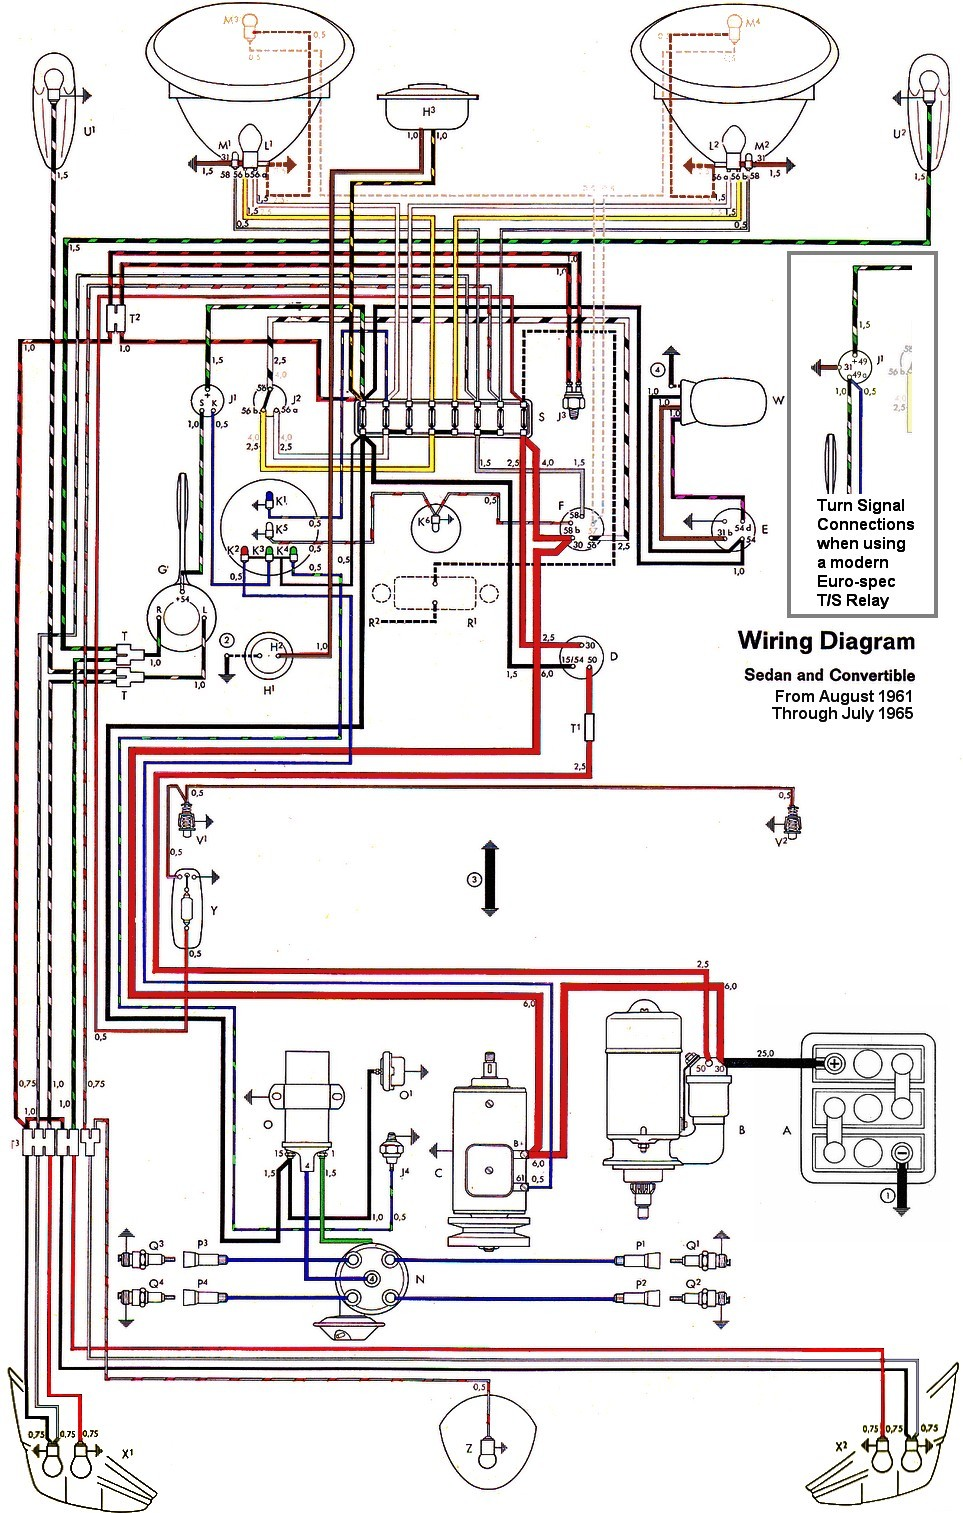 bug_62 65withinset 1999 vw beetle wiring diagram efcaviation com 1999 vw beetle wiring diagram at n-0.co